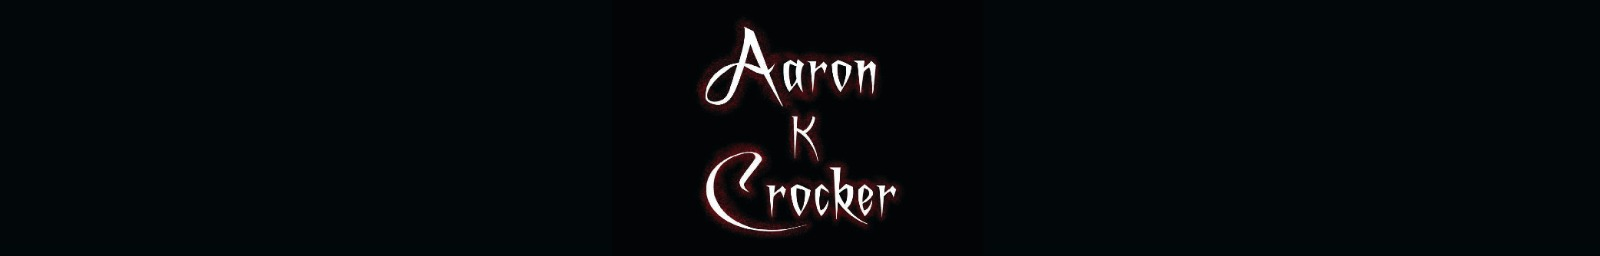 The Official Website of Aaron K Crocker